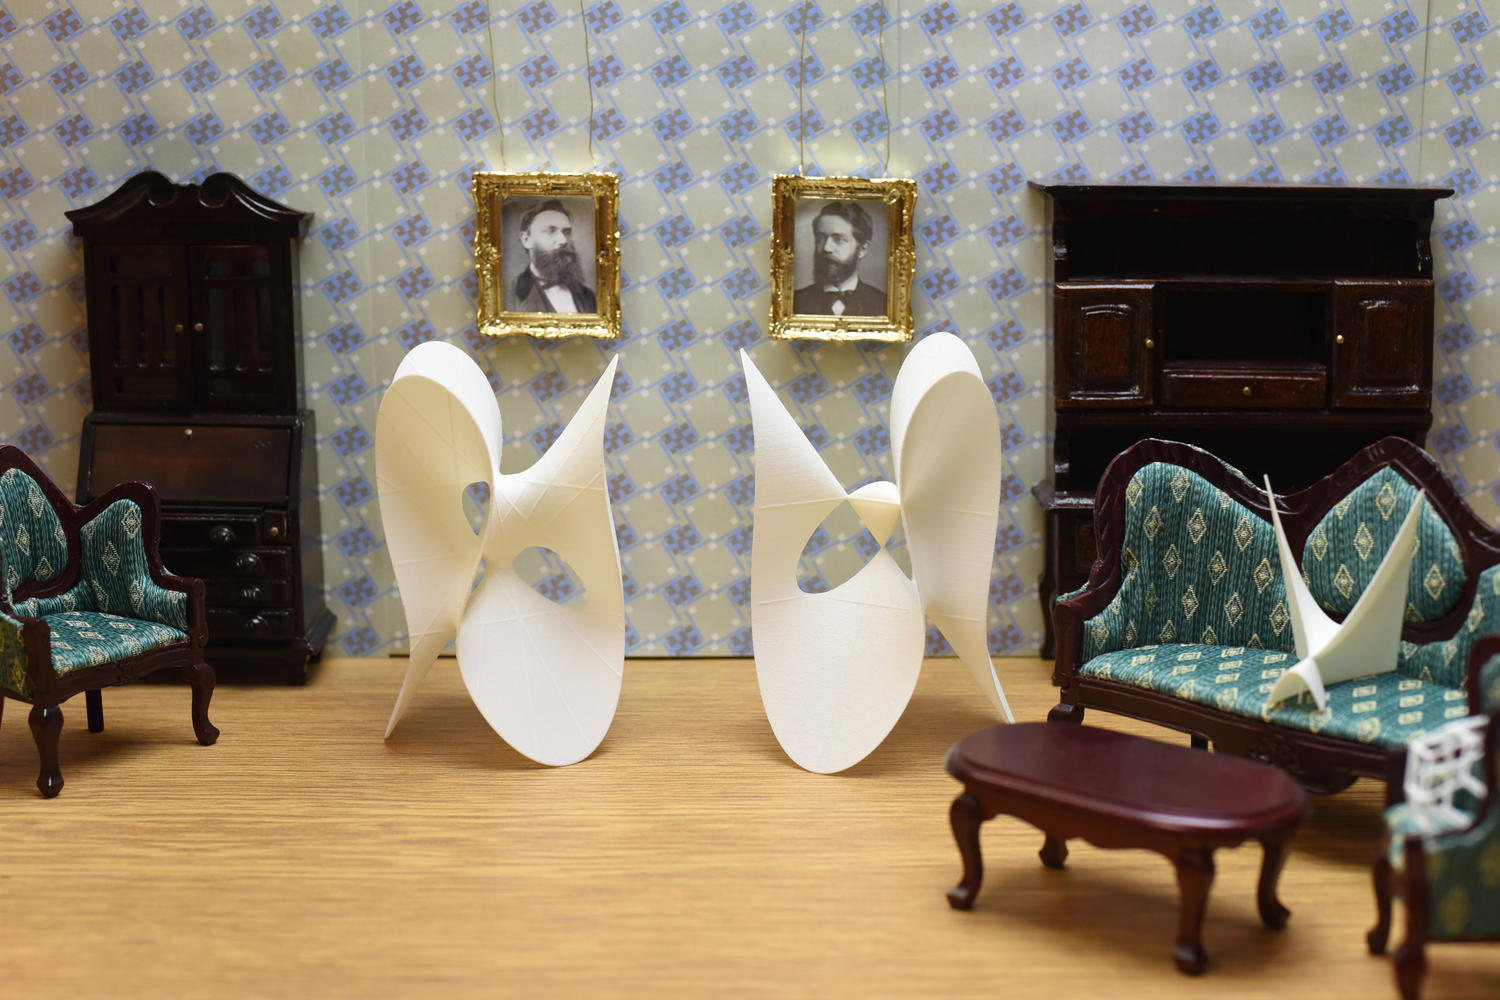 Clebsch and Klein in the family room - MO-Labs photo series: Math sculptures in context